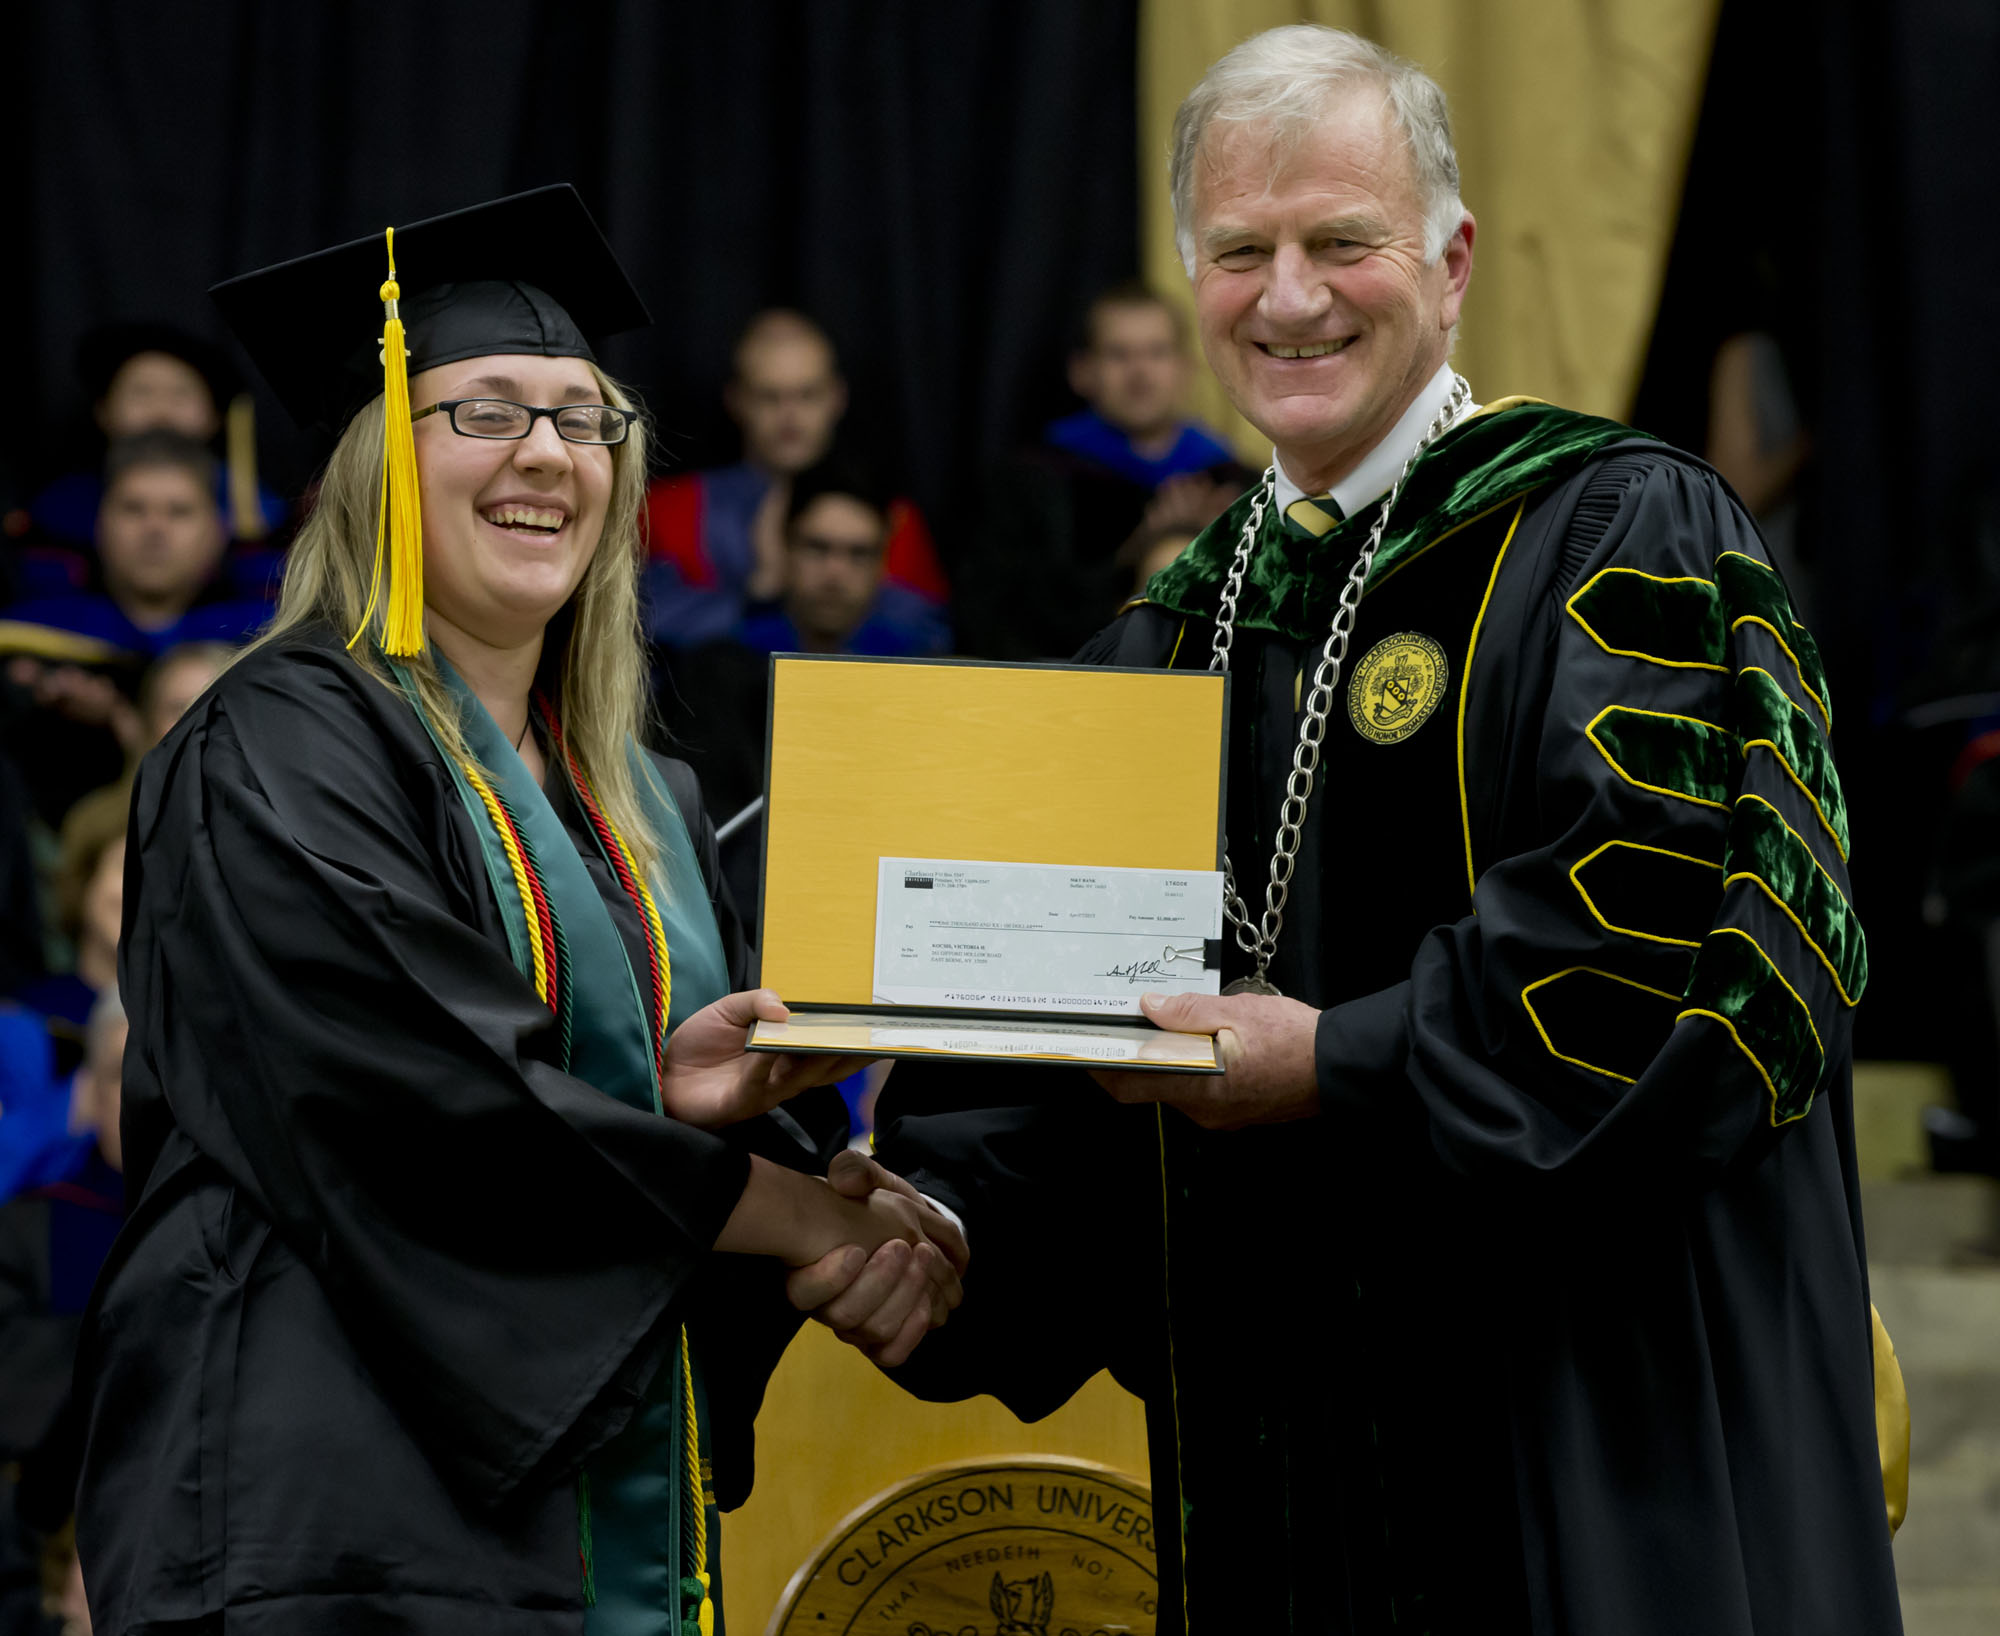 Clarkson University President Tony Collins (right) presents the Levinus Clarkson Award to Victoria Kocsis.